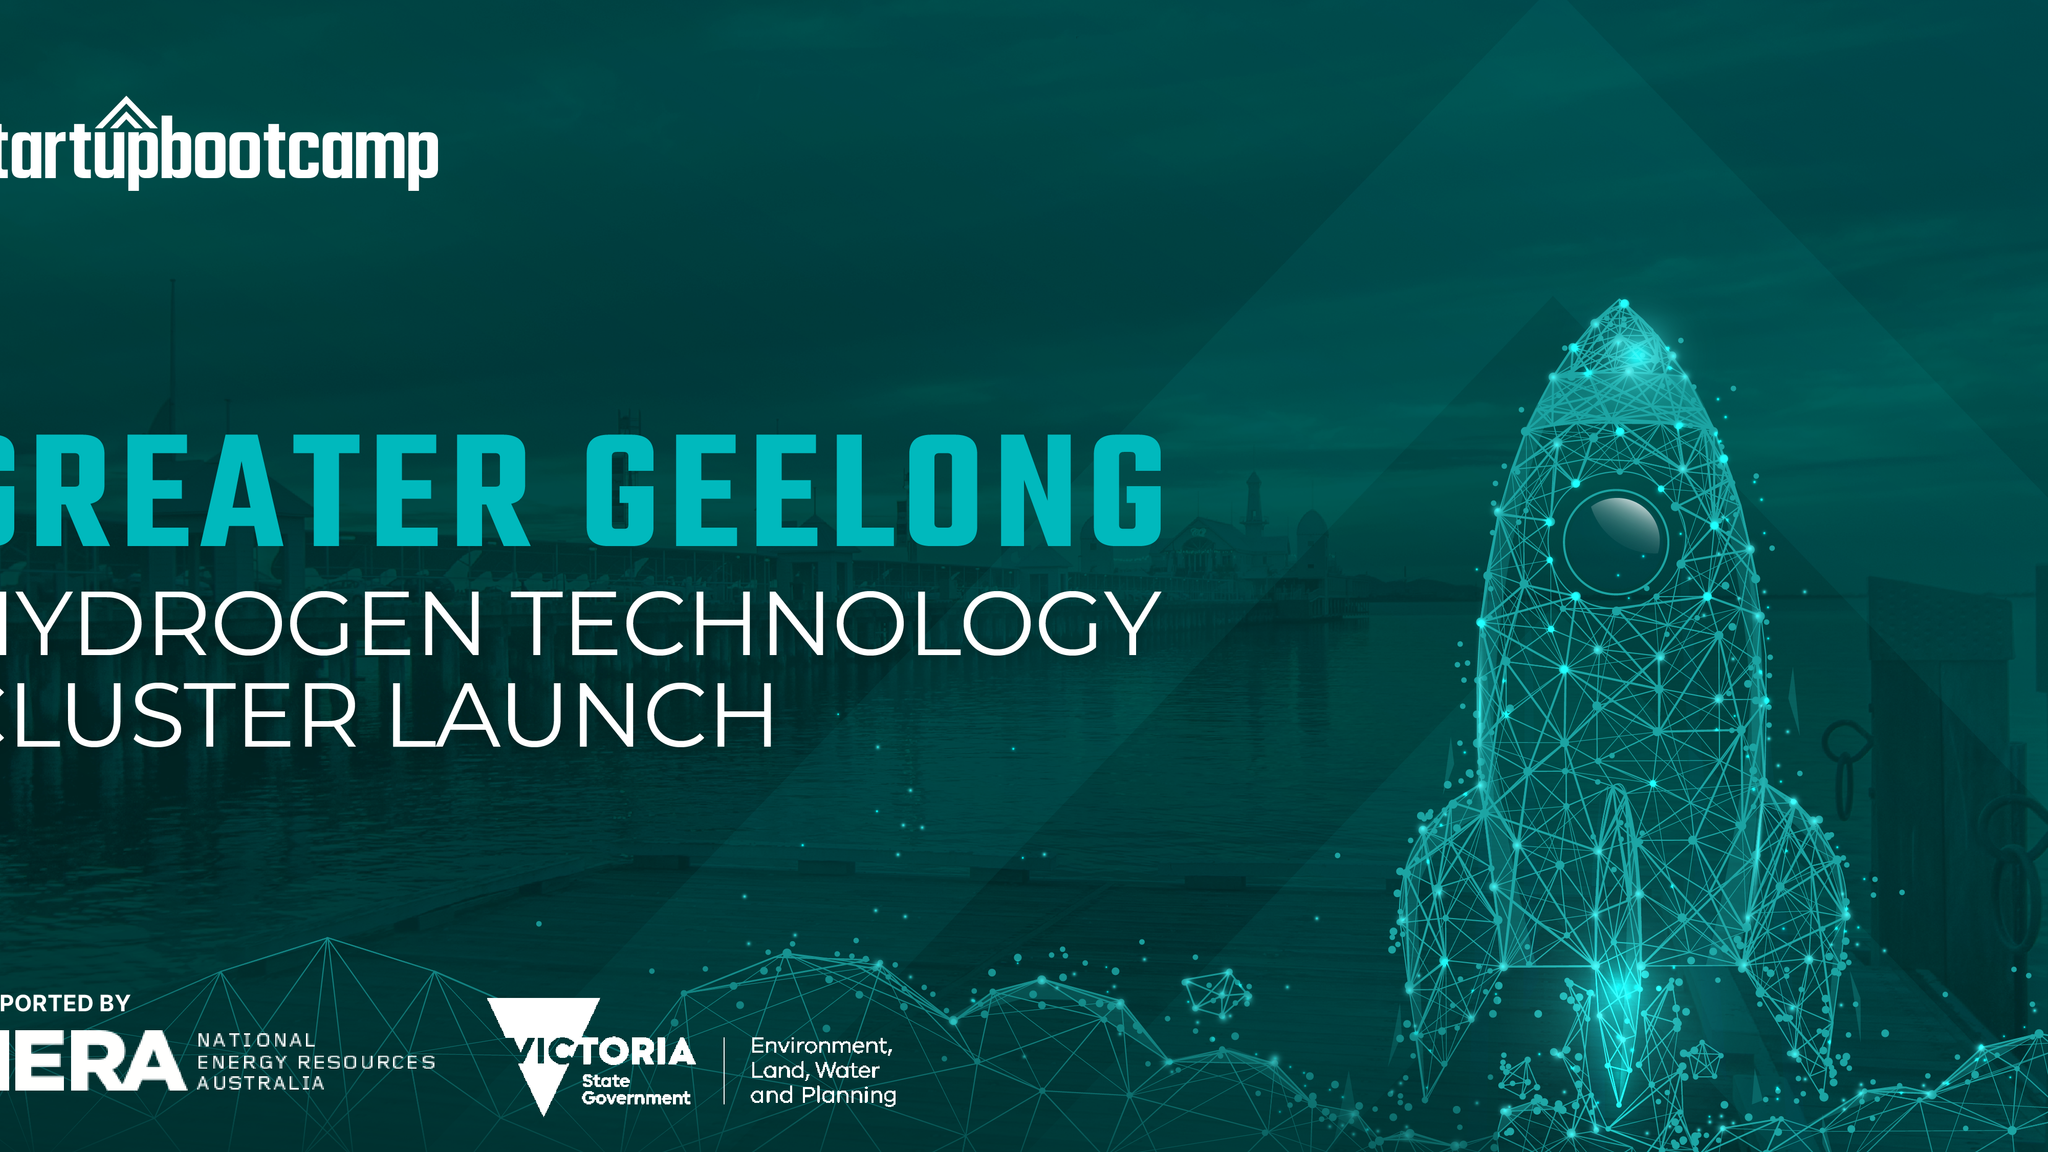 Startupbootcamp Maps the World of Hydrogen Startups as it Launches Hydrogen Technology Cluster in Greater Geelong